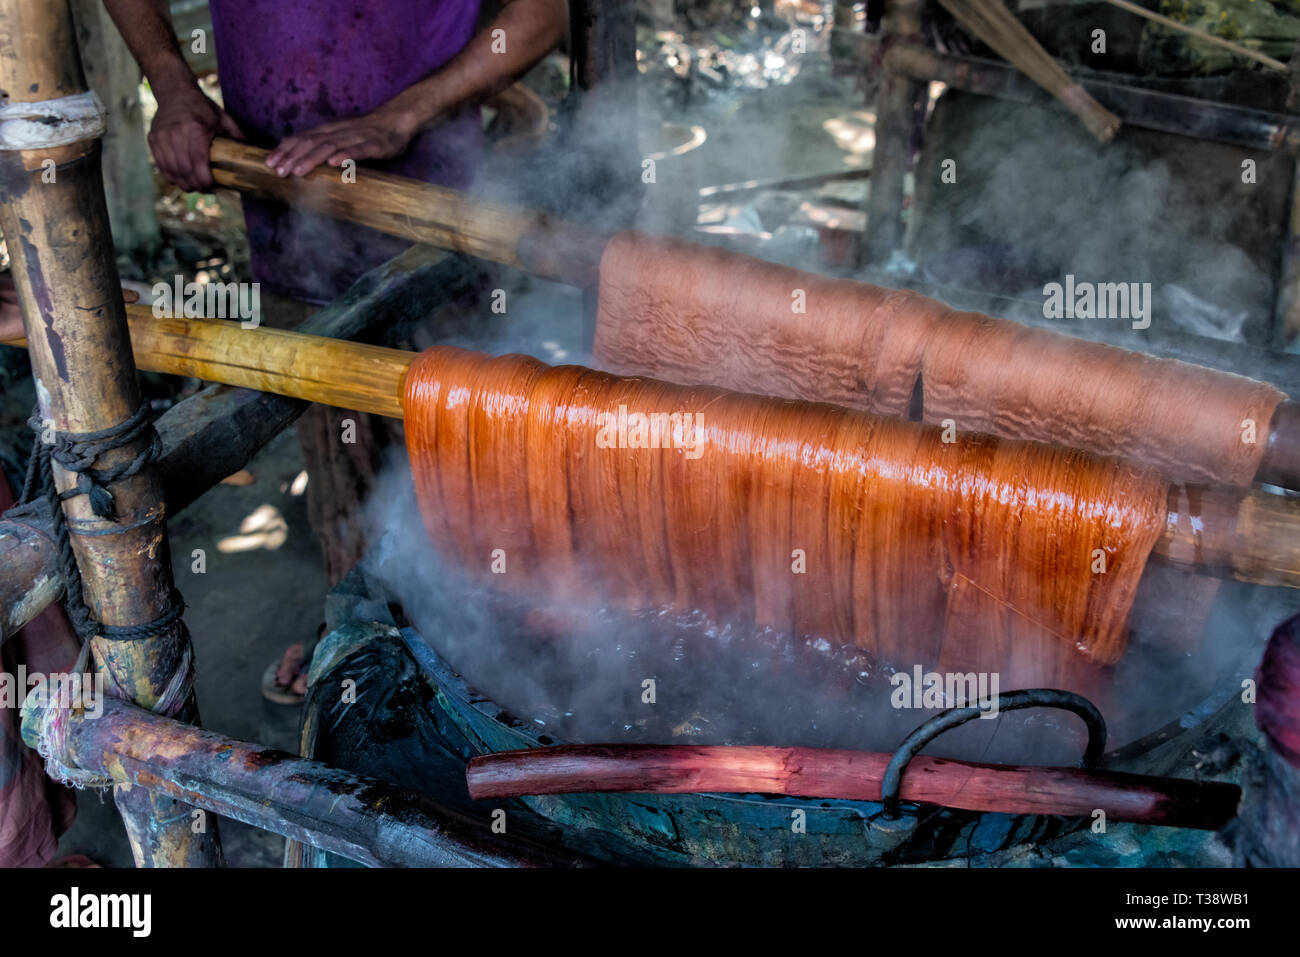 Traditional way of dying yarn in the traditional weaving village, Tangail district, Dhaka Division, Bangladesh - Stock Image